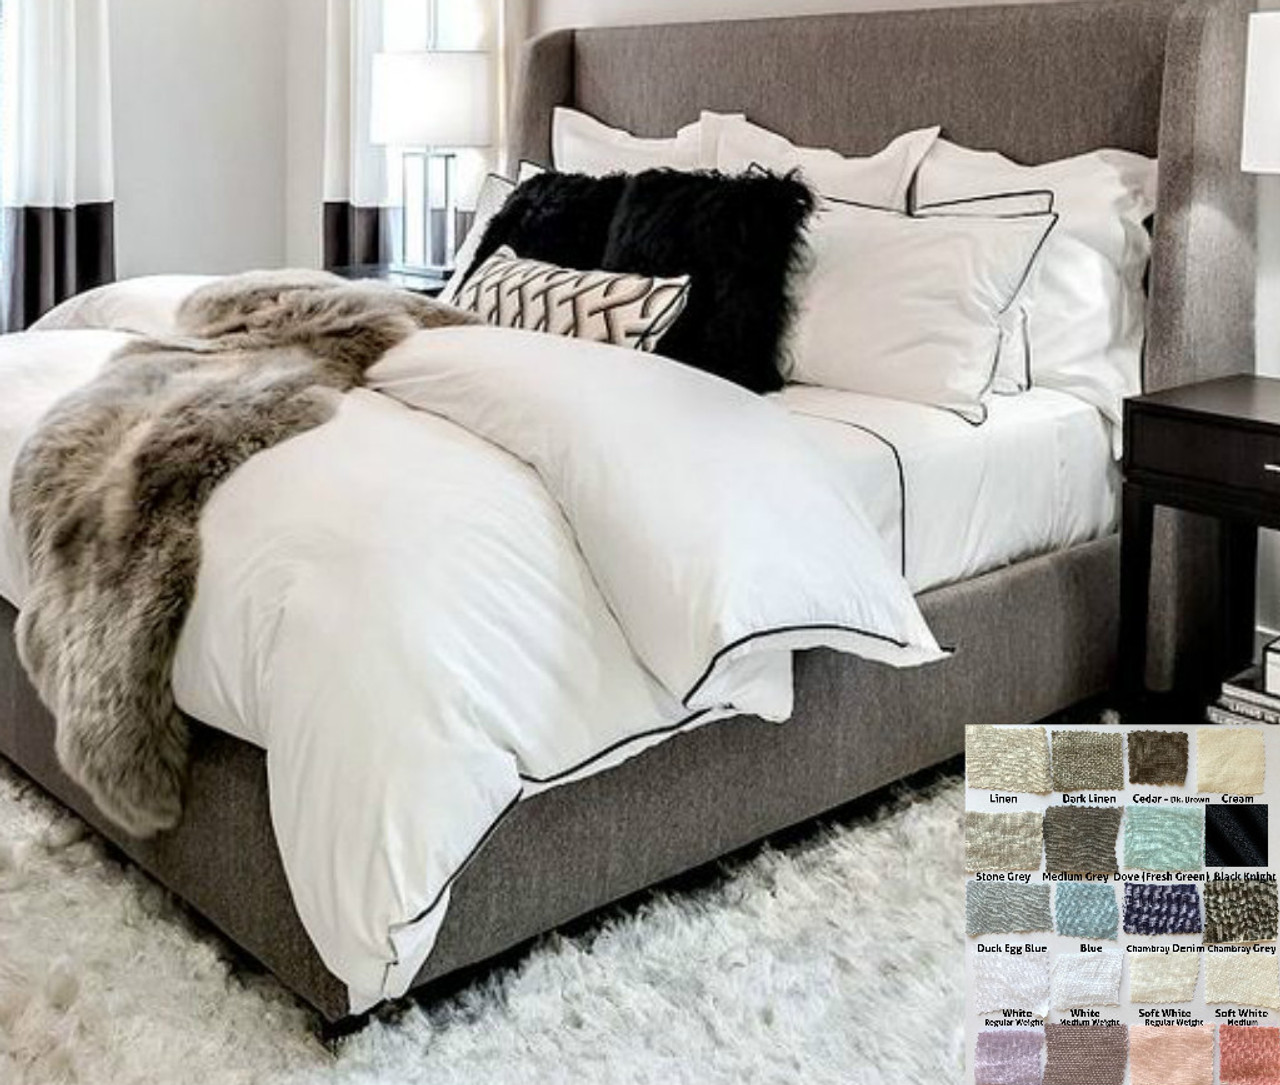 White Linen Duvet Cover With Piping White Gray Blue